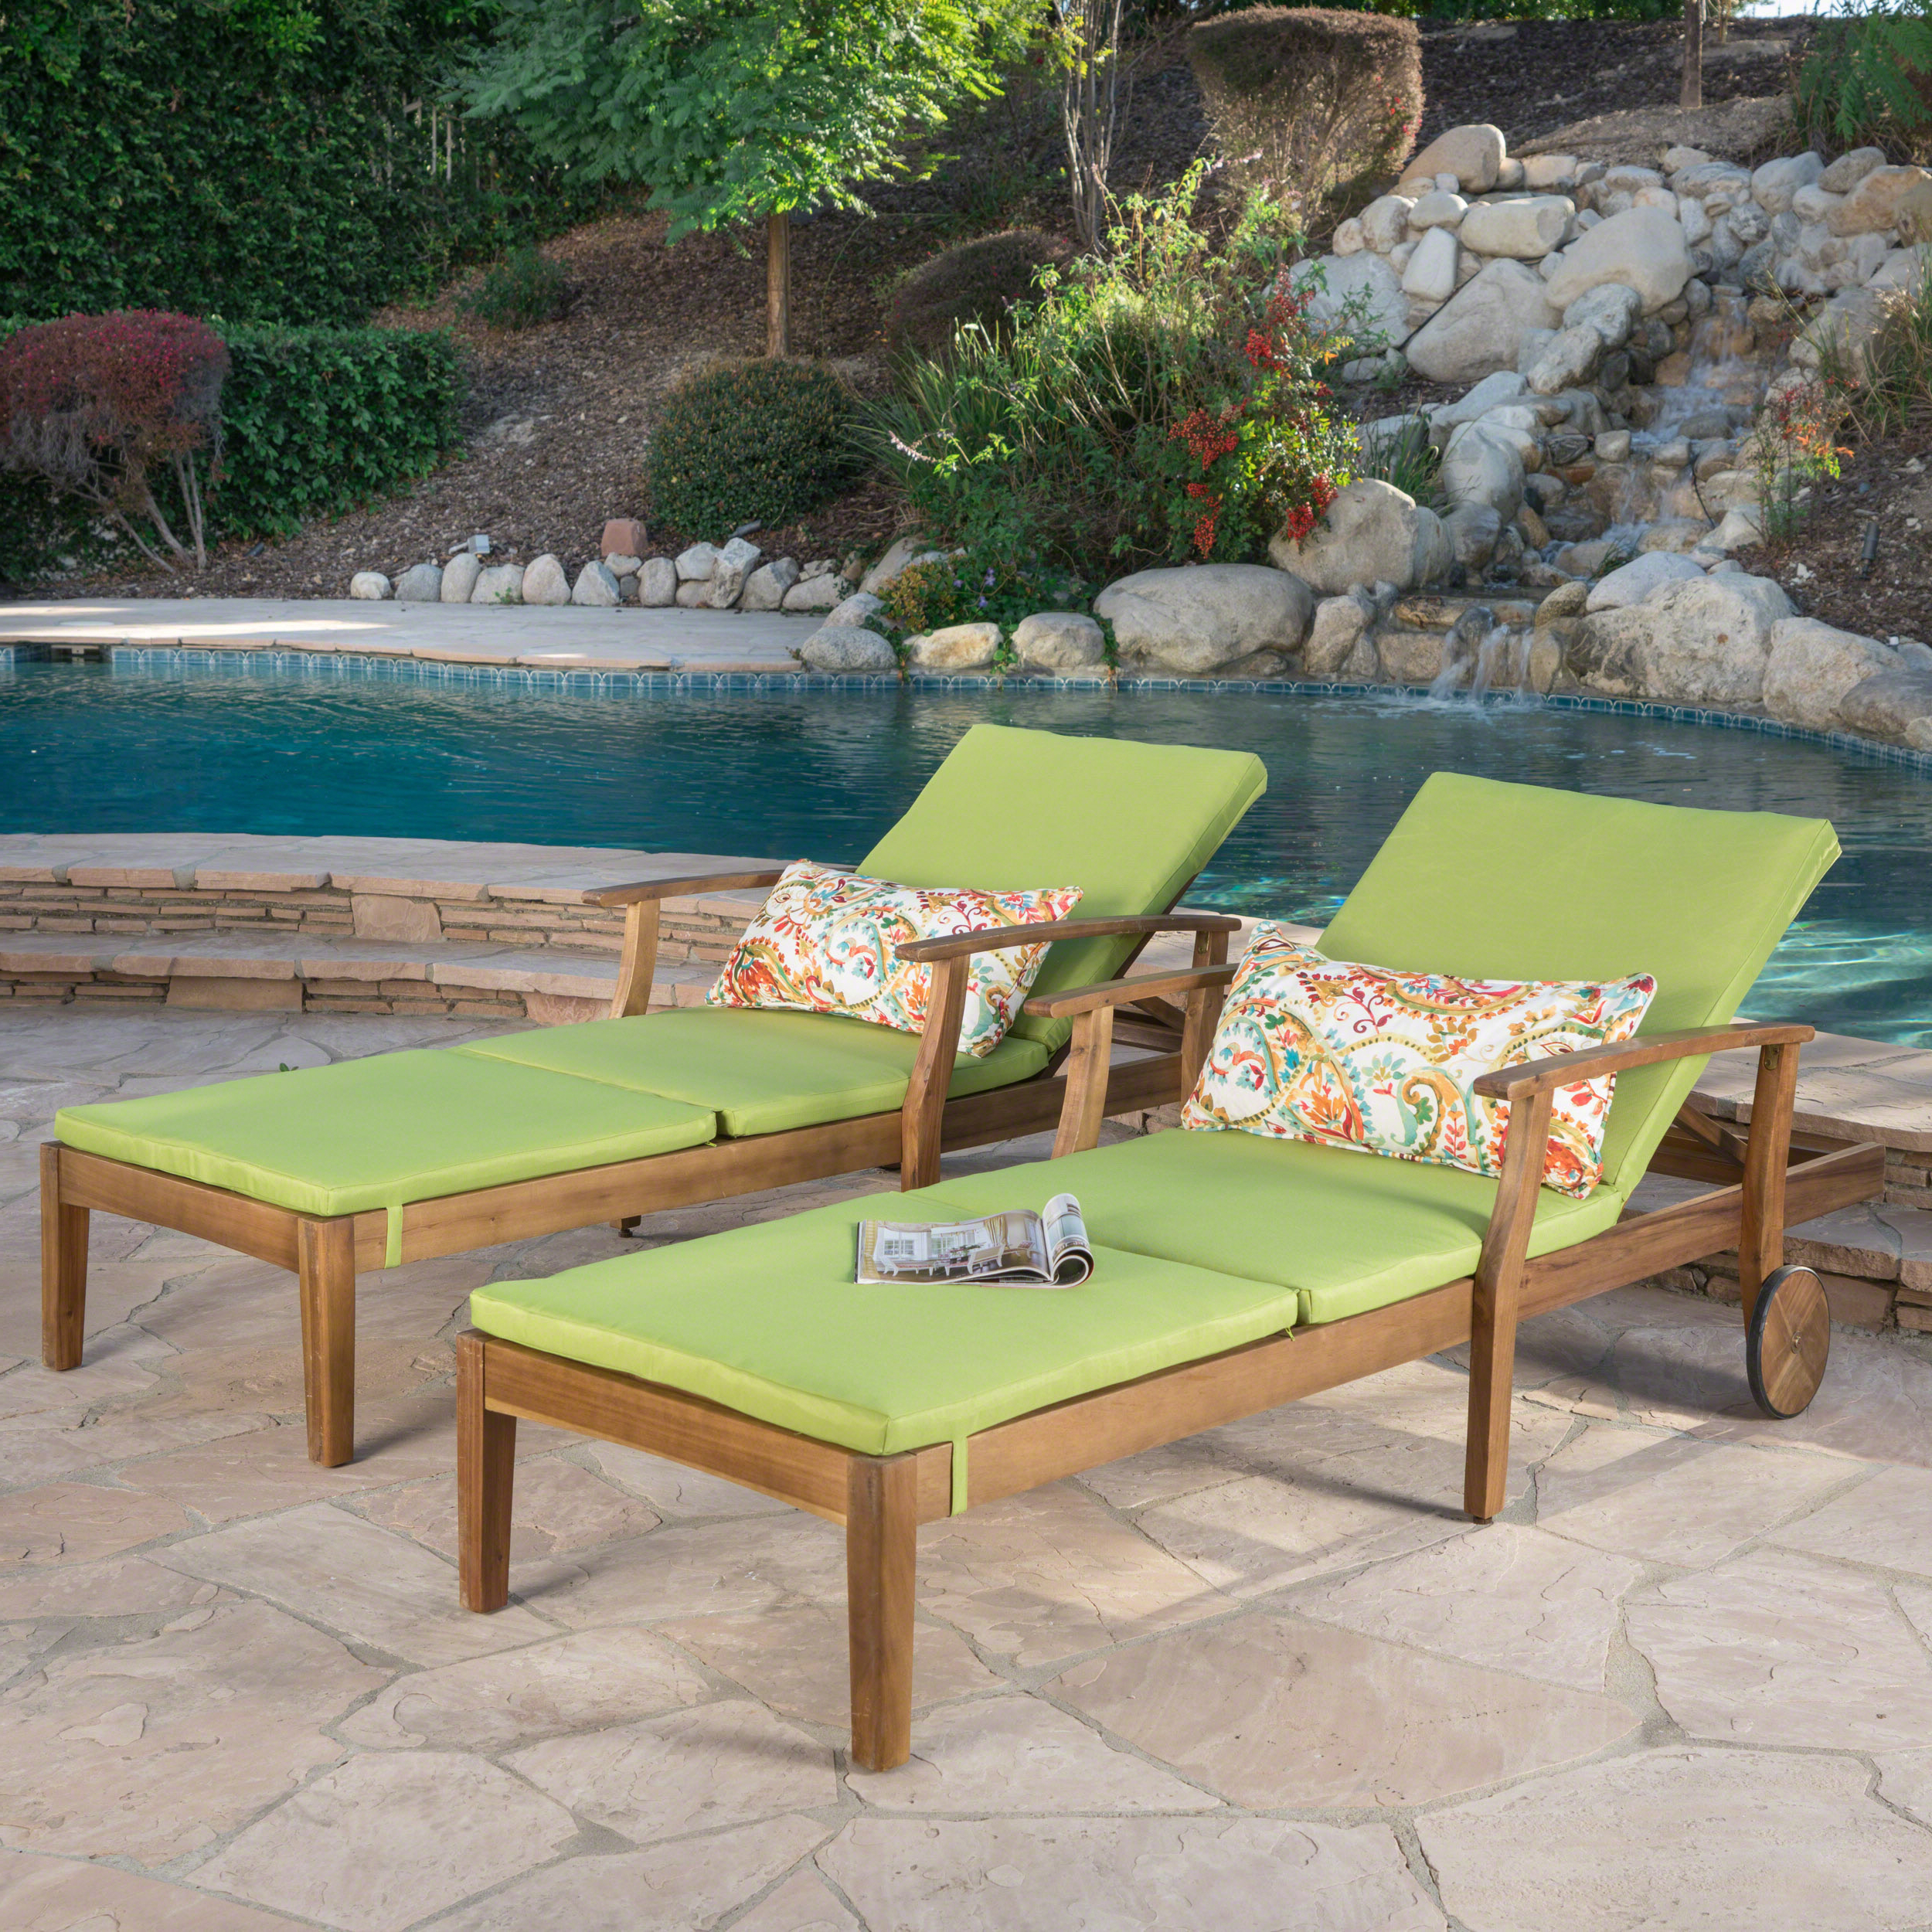 Mavis Outdoor Chaise Lounge With Cushion, Set Of 2, Teak Finish, Green Pertaining To Well Known Outdoor Acacia Wood Chaise Lounges And Cushion Sets (View 8 of 25)